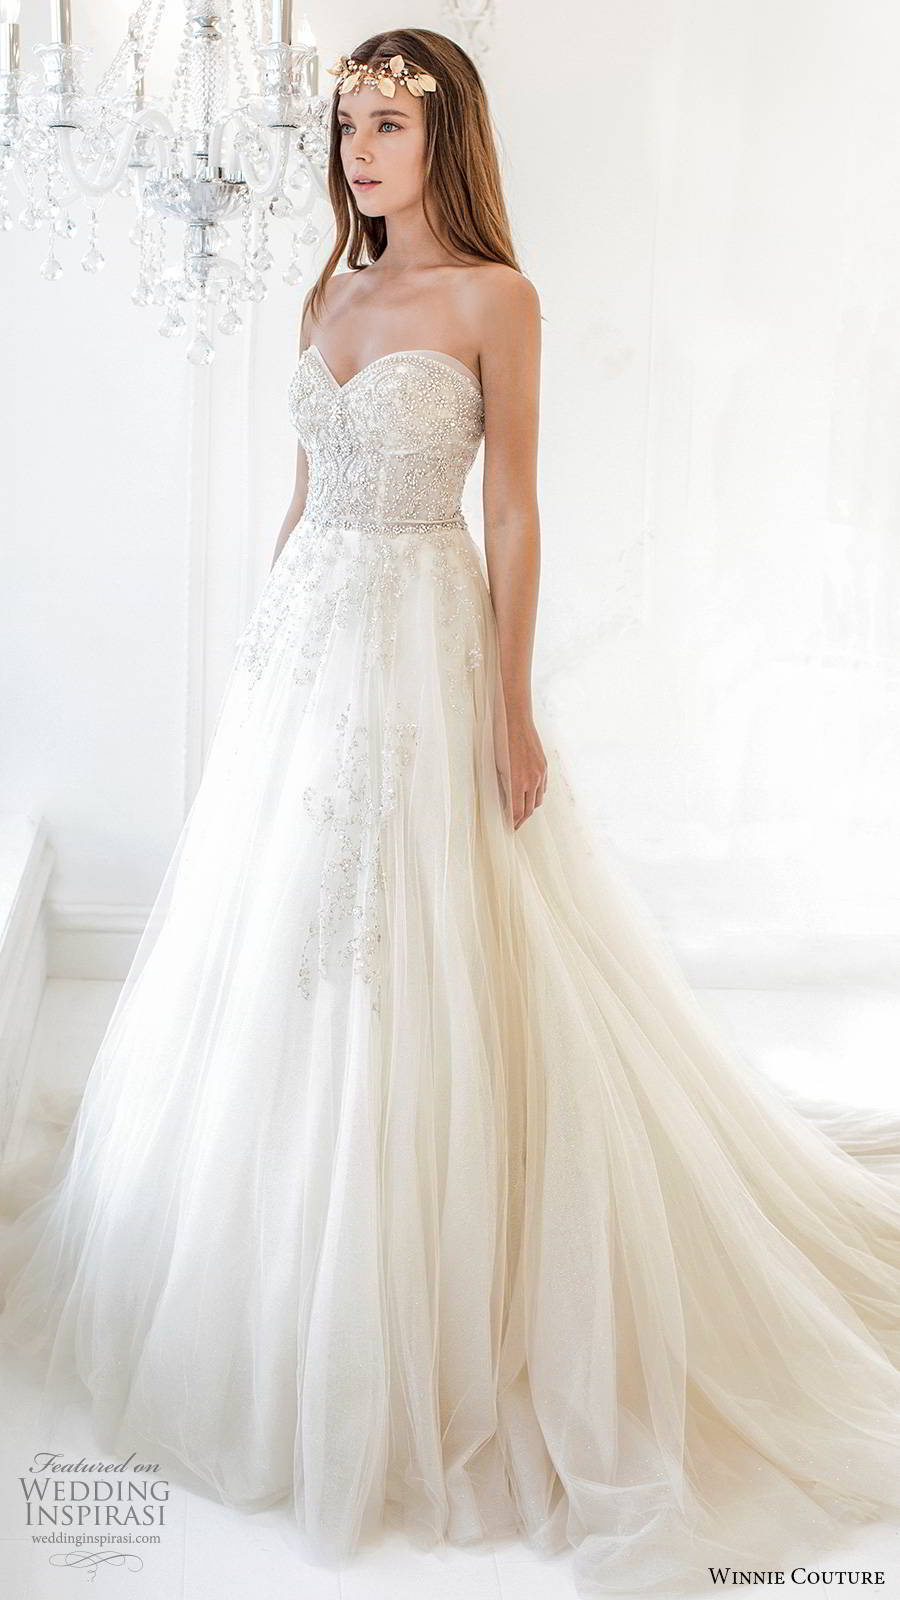 winnie couture 2019 bridal strapless sweetheart fully embellished  a line ball gown glitzy romantic wedding dress chapel train (7) sv